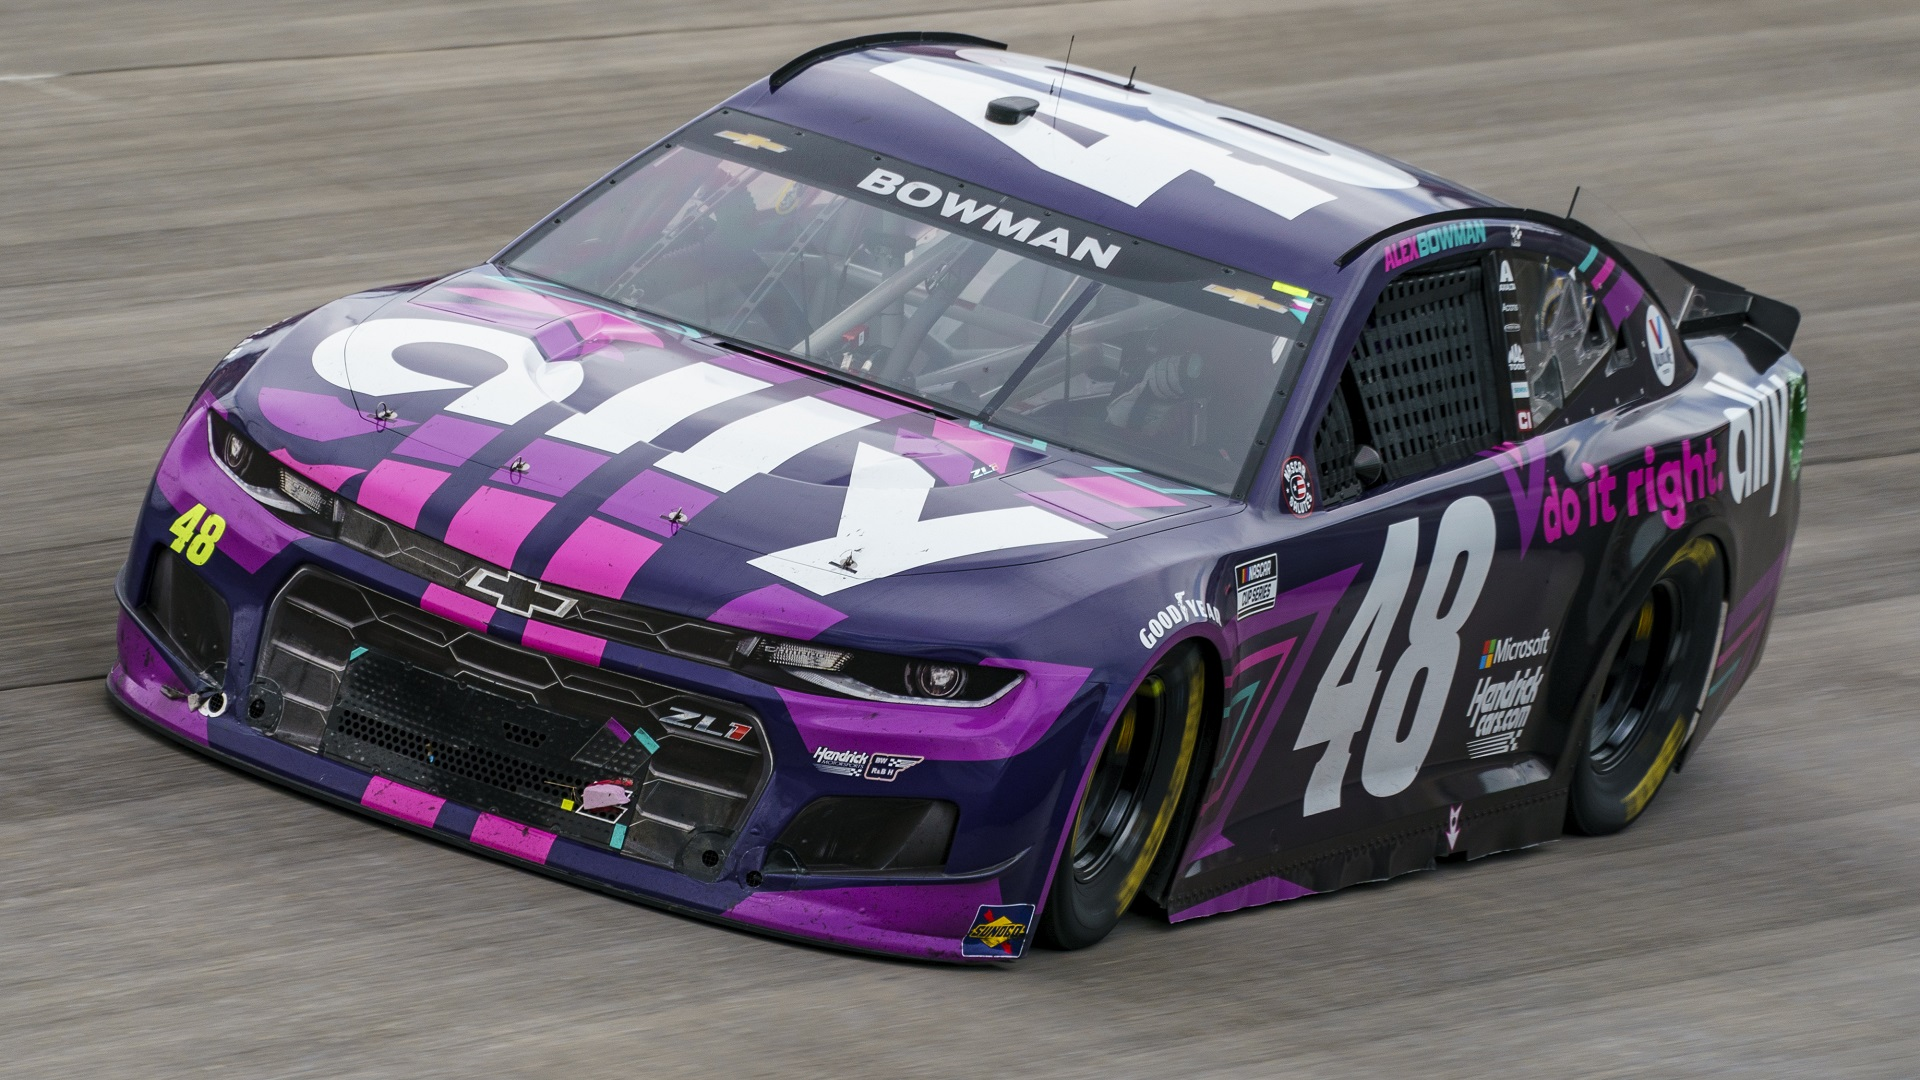 Bowman parks 48 in familiar spot in victory lane at Dover